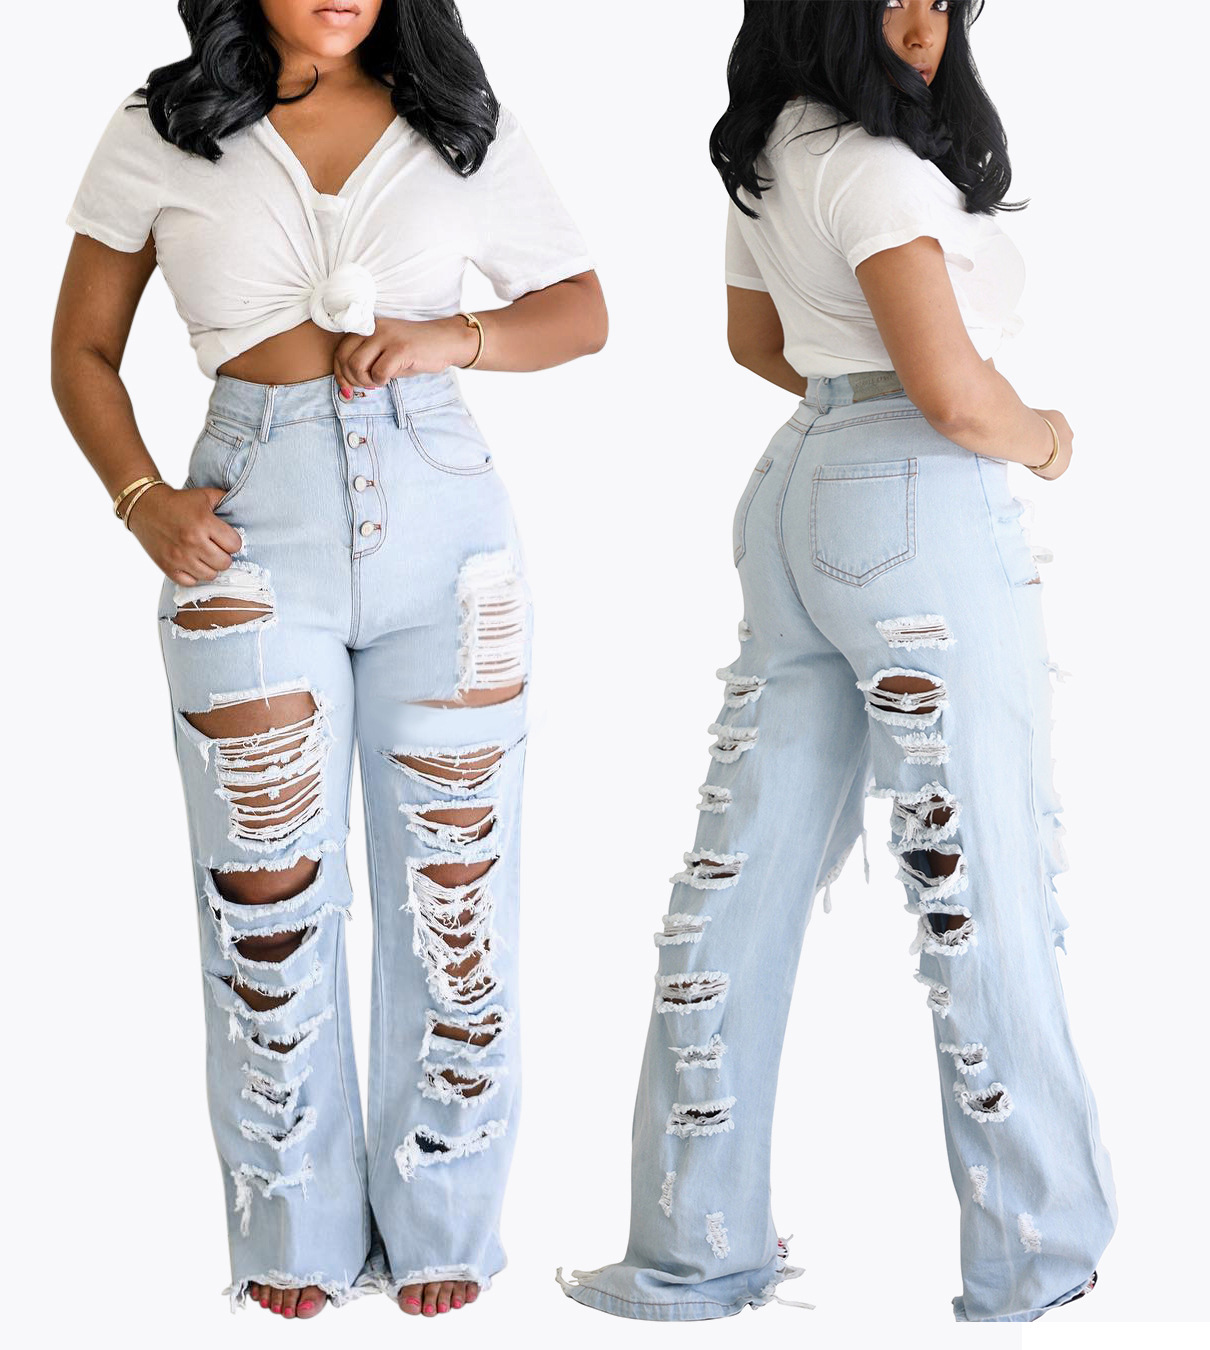 2020 New Women's Jeans Women's Clothing Style Jeans 2037 Personality Front And Back With Holes Beggar Version Trousers Fringed Straight Tro